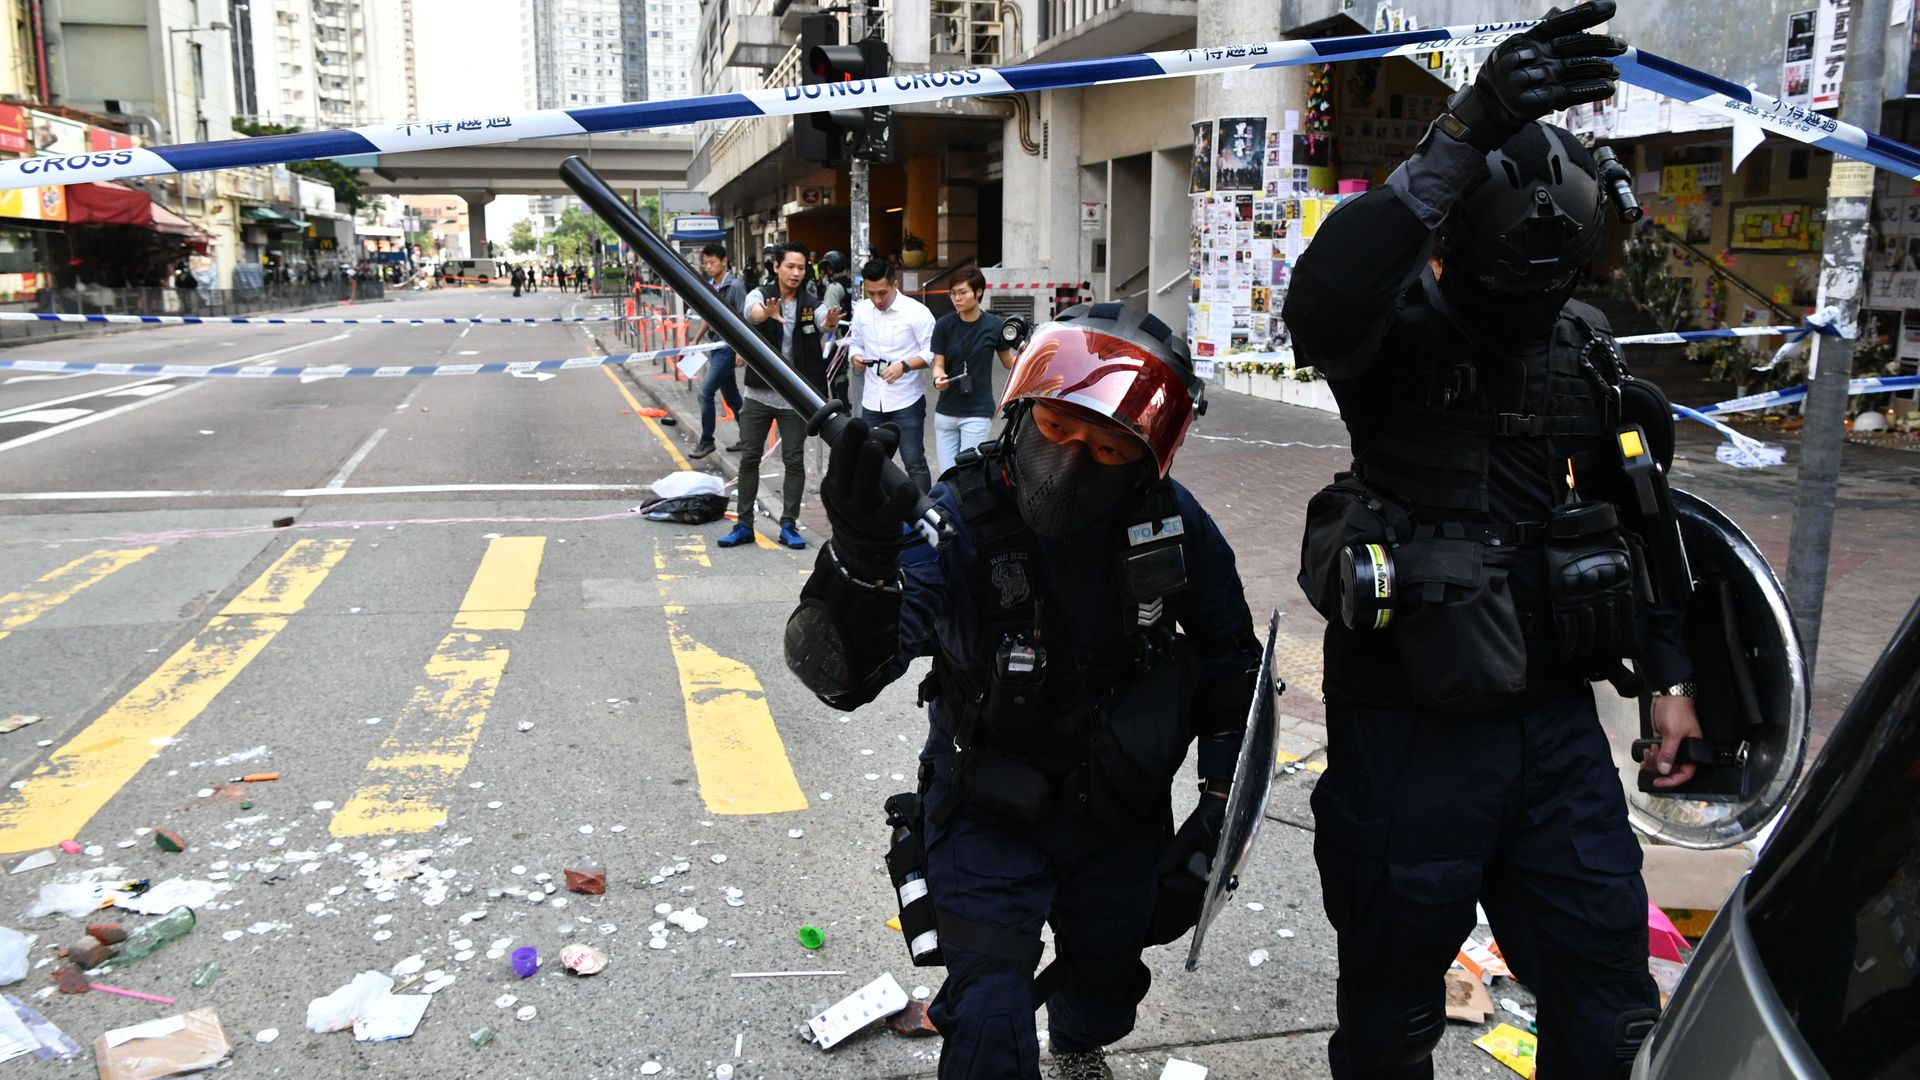 Hong Kong protester shot by police, video shows